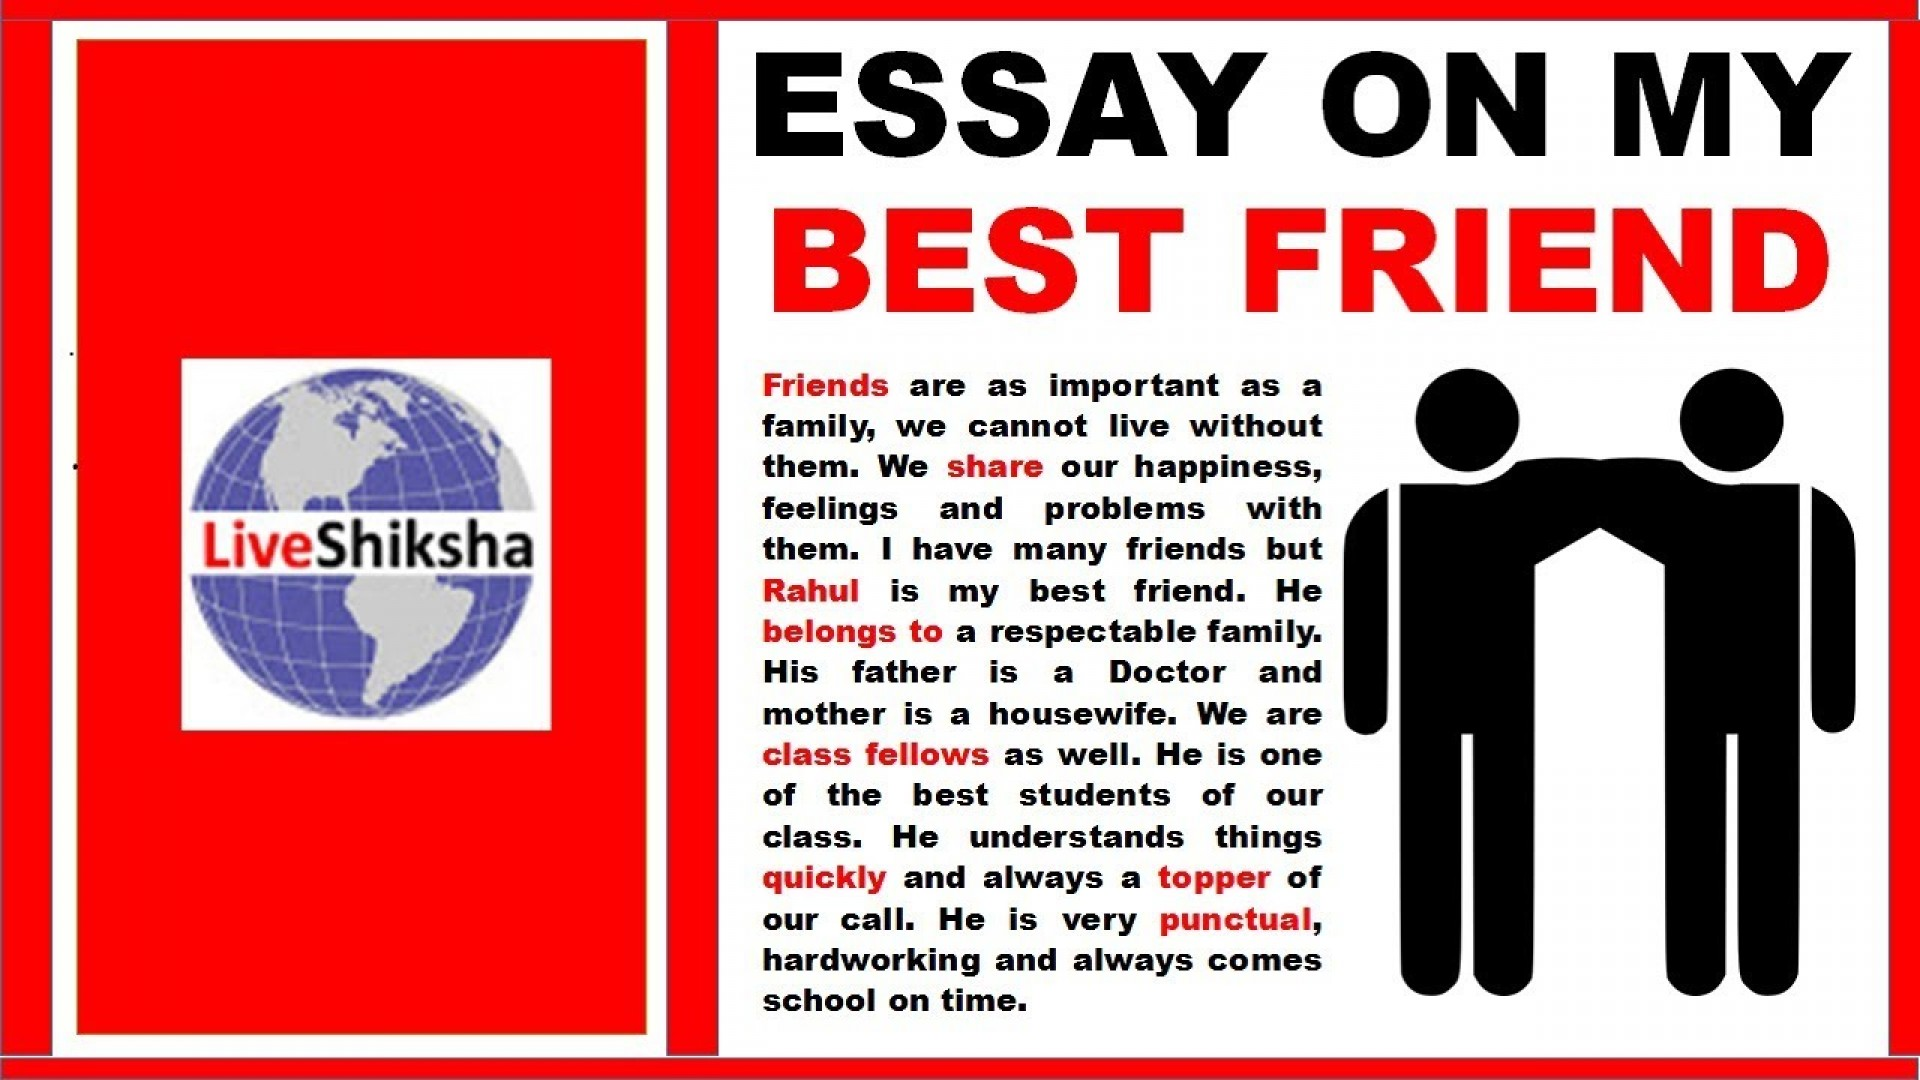 002 My Best Friend Essay In English Maxresdefault Sensational For Class 8 Pdf 2 1920